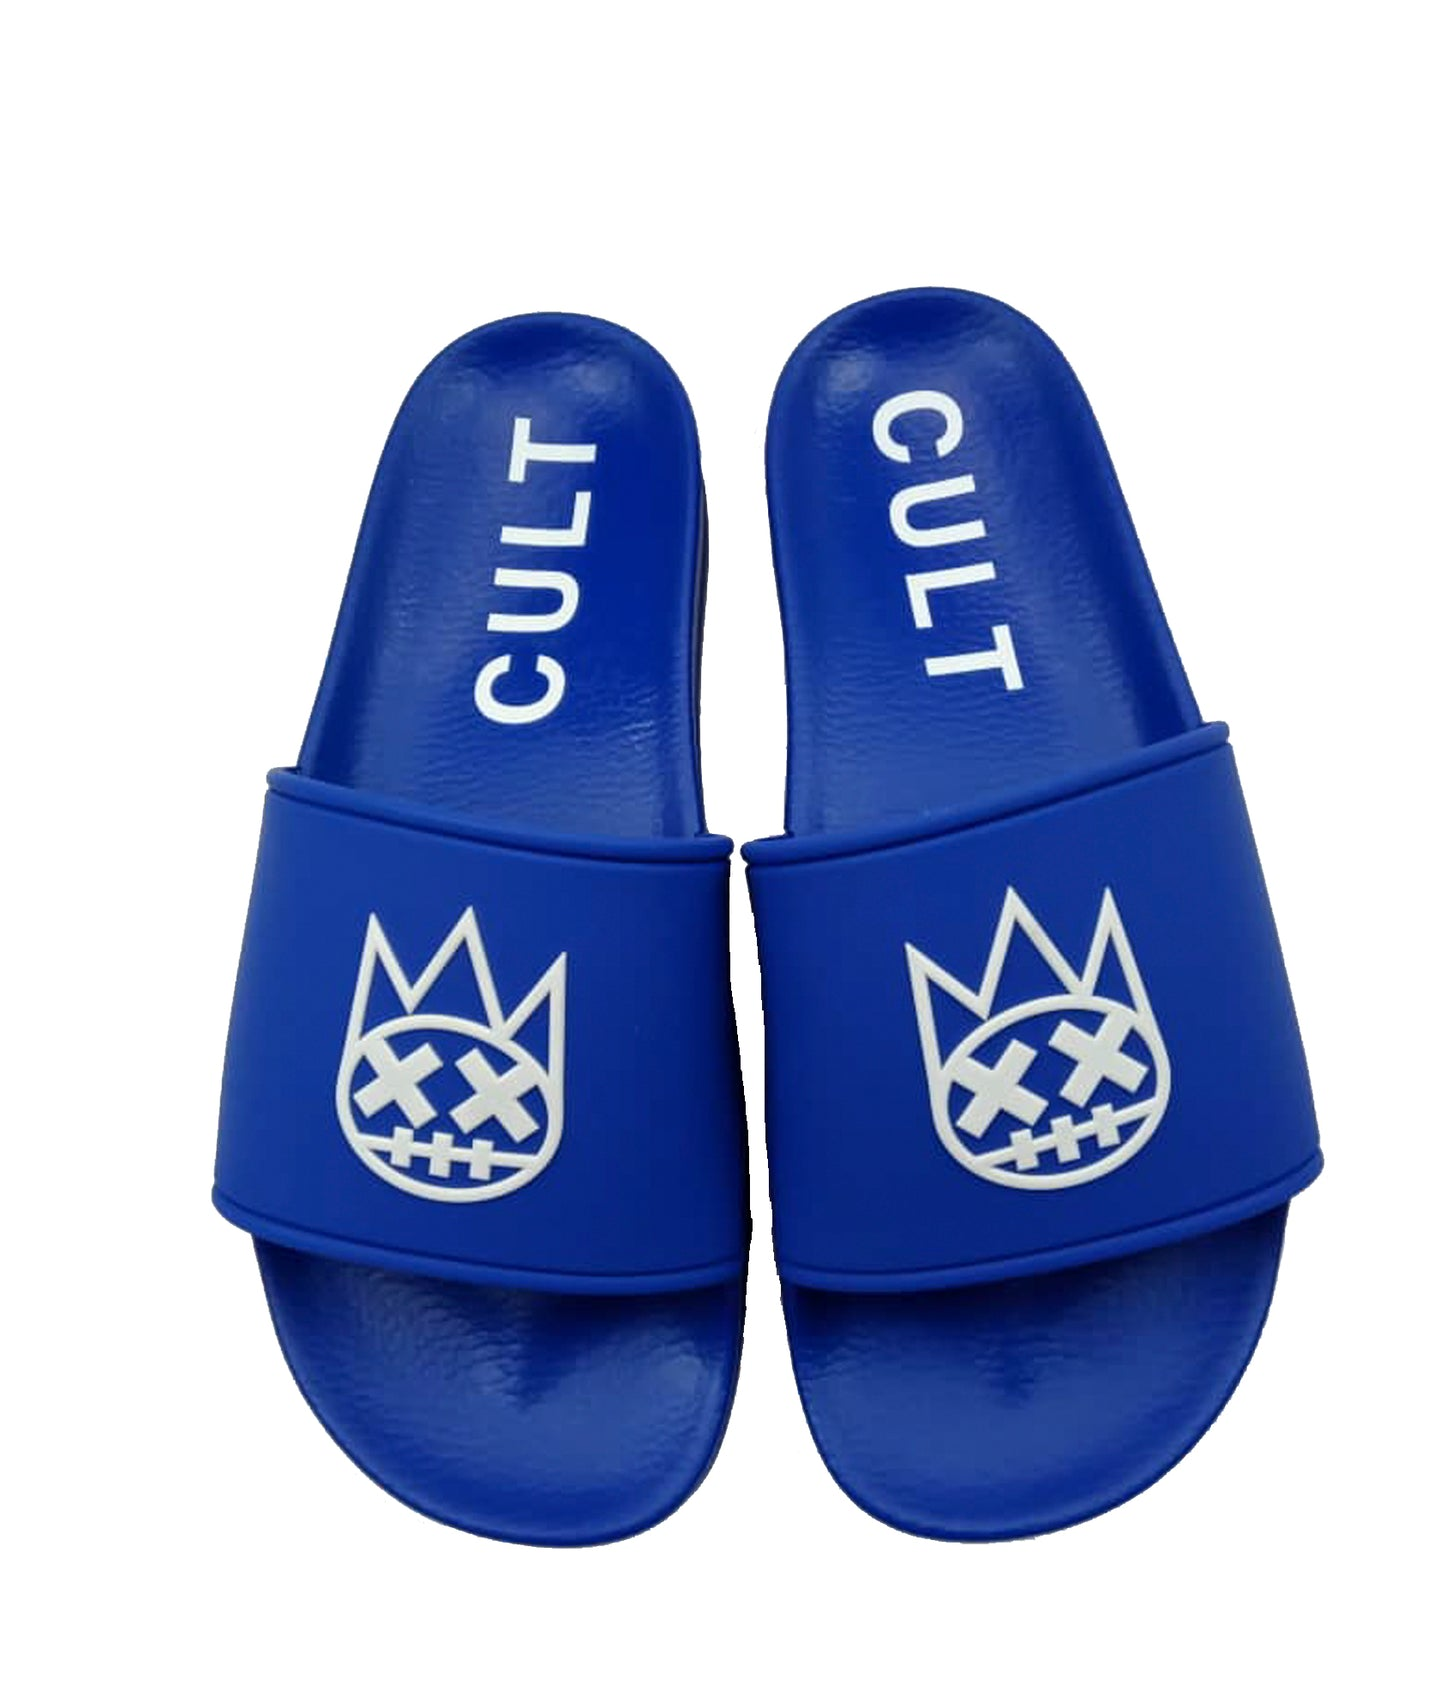 CULT SANDALS IN ROYAL BLUE